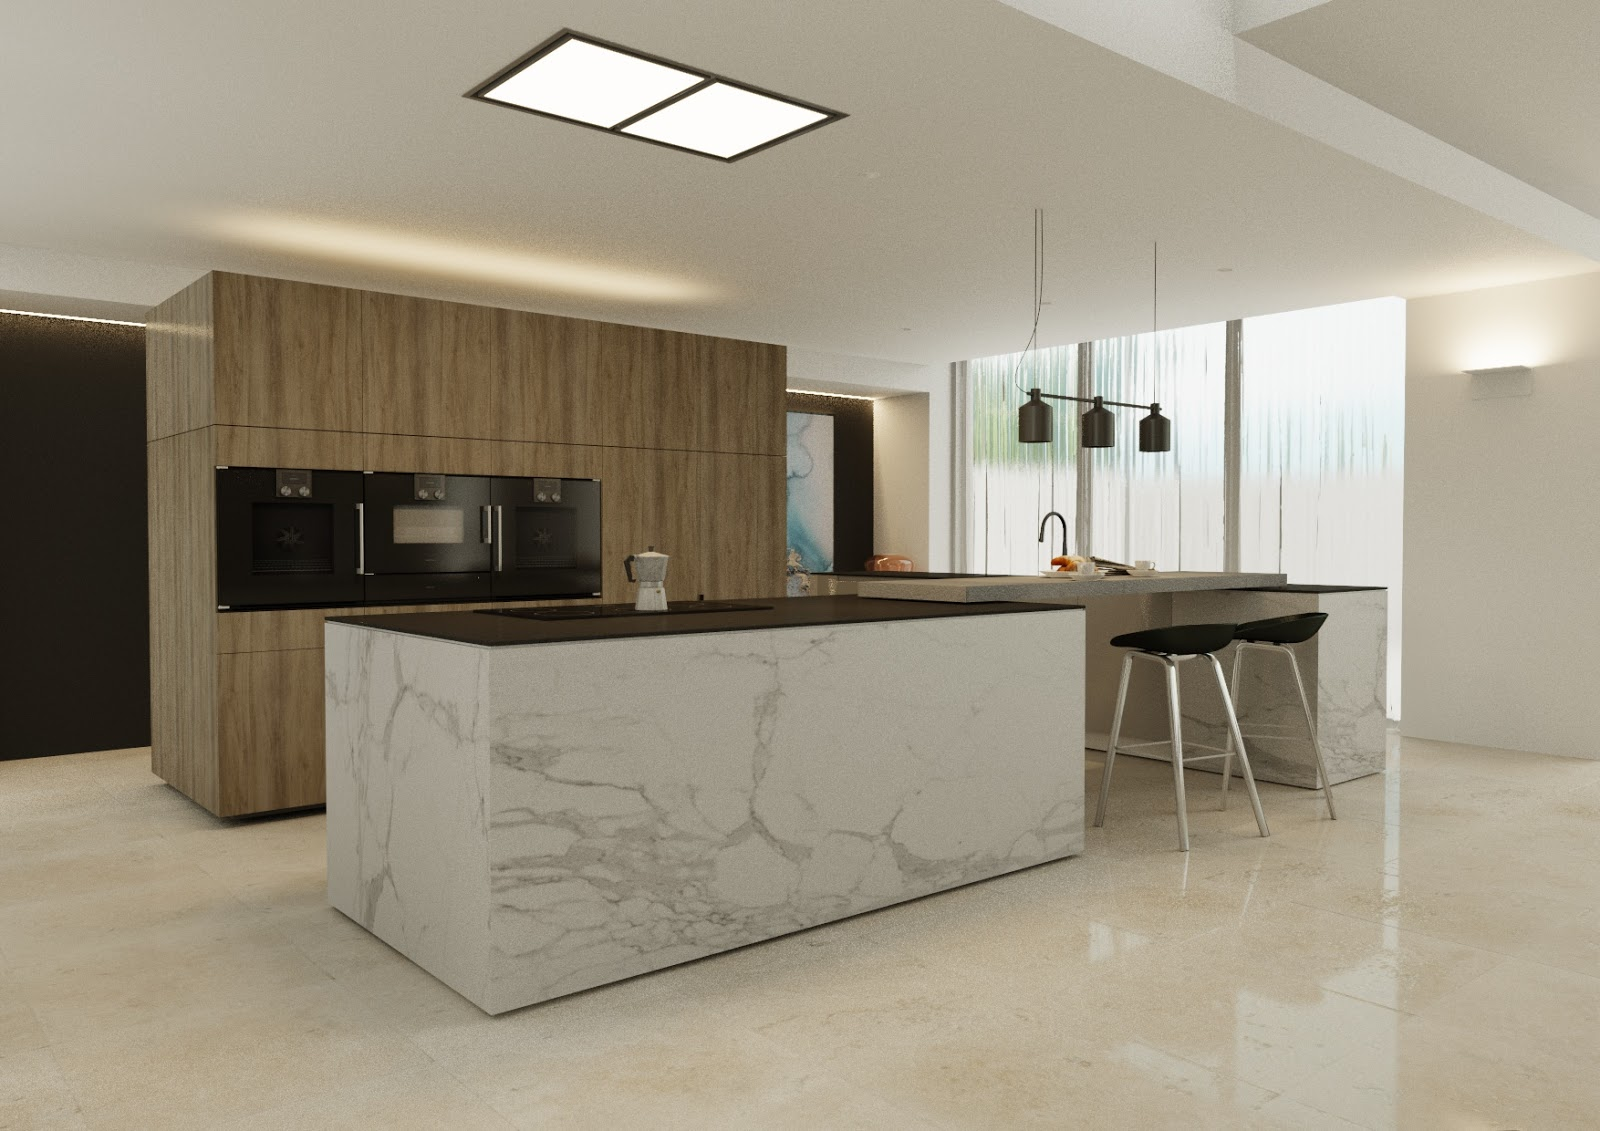 minosa modern kitchen design requires contemporary approach - Contemporary Kitchens Designs